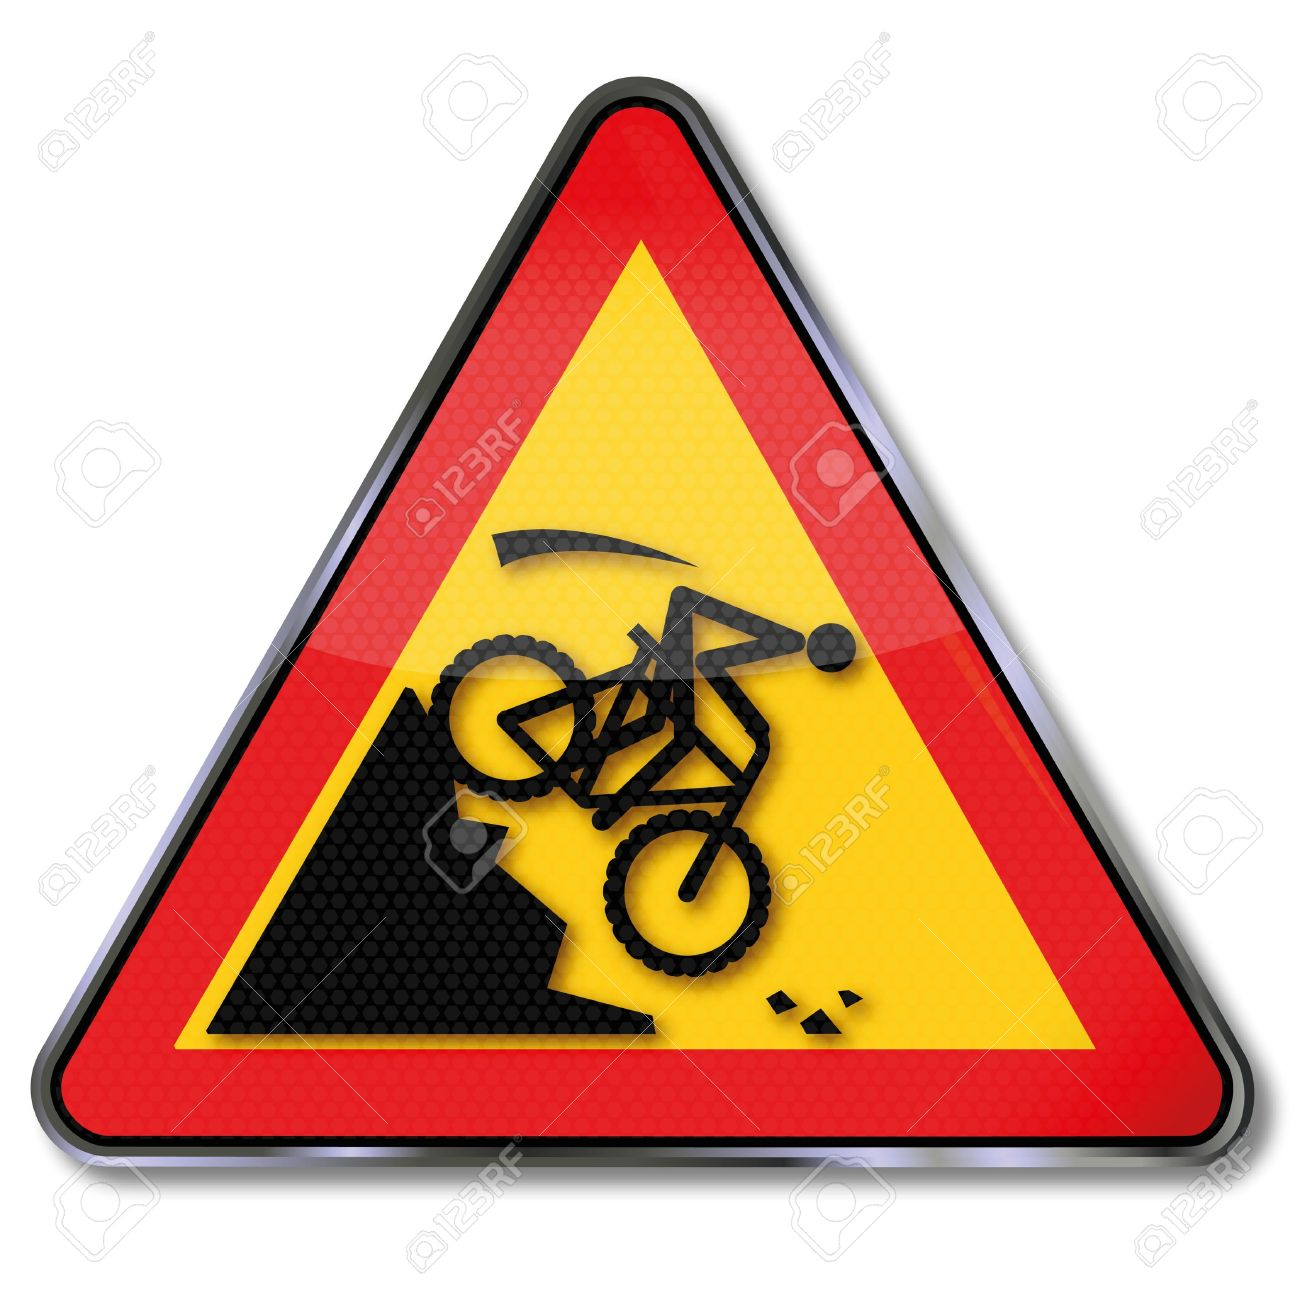 1300x1295 Warning Sign On The Slope Of A Mountain Bike Crash Royalty Free